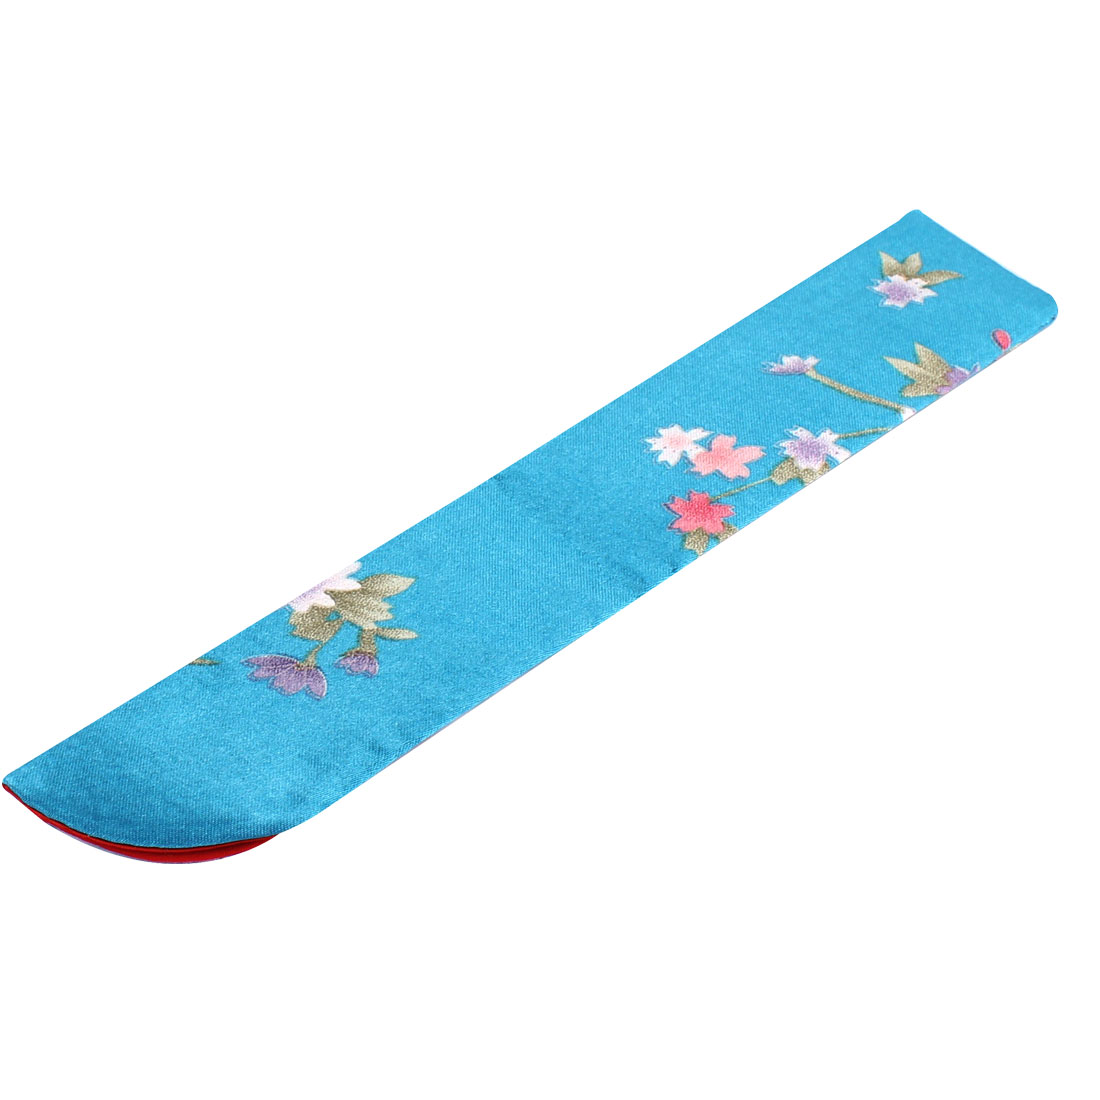 Smooth Silk Blend Folding Floral Pattern Classic Style Fan Pouch Teal Blue